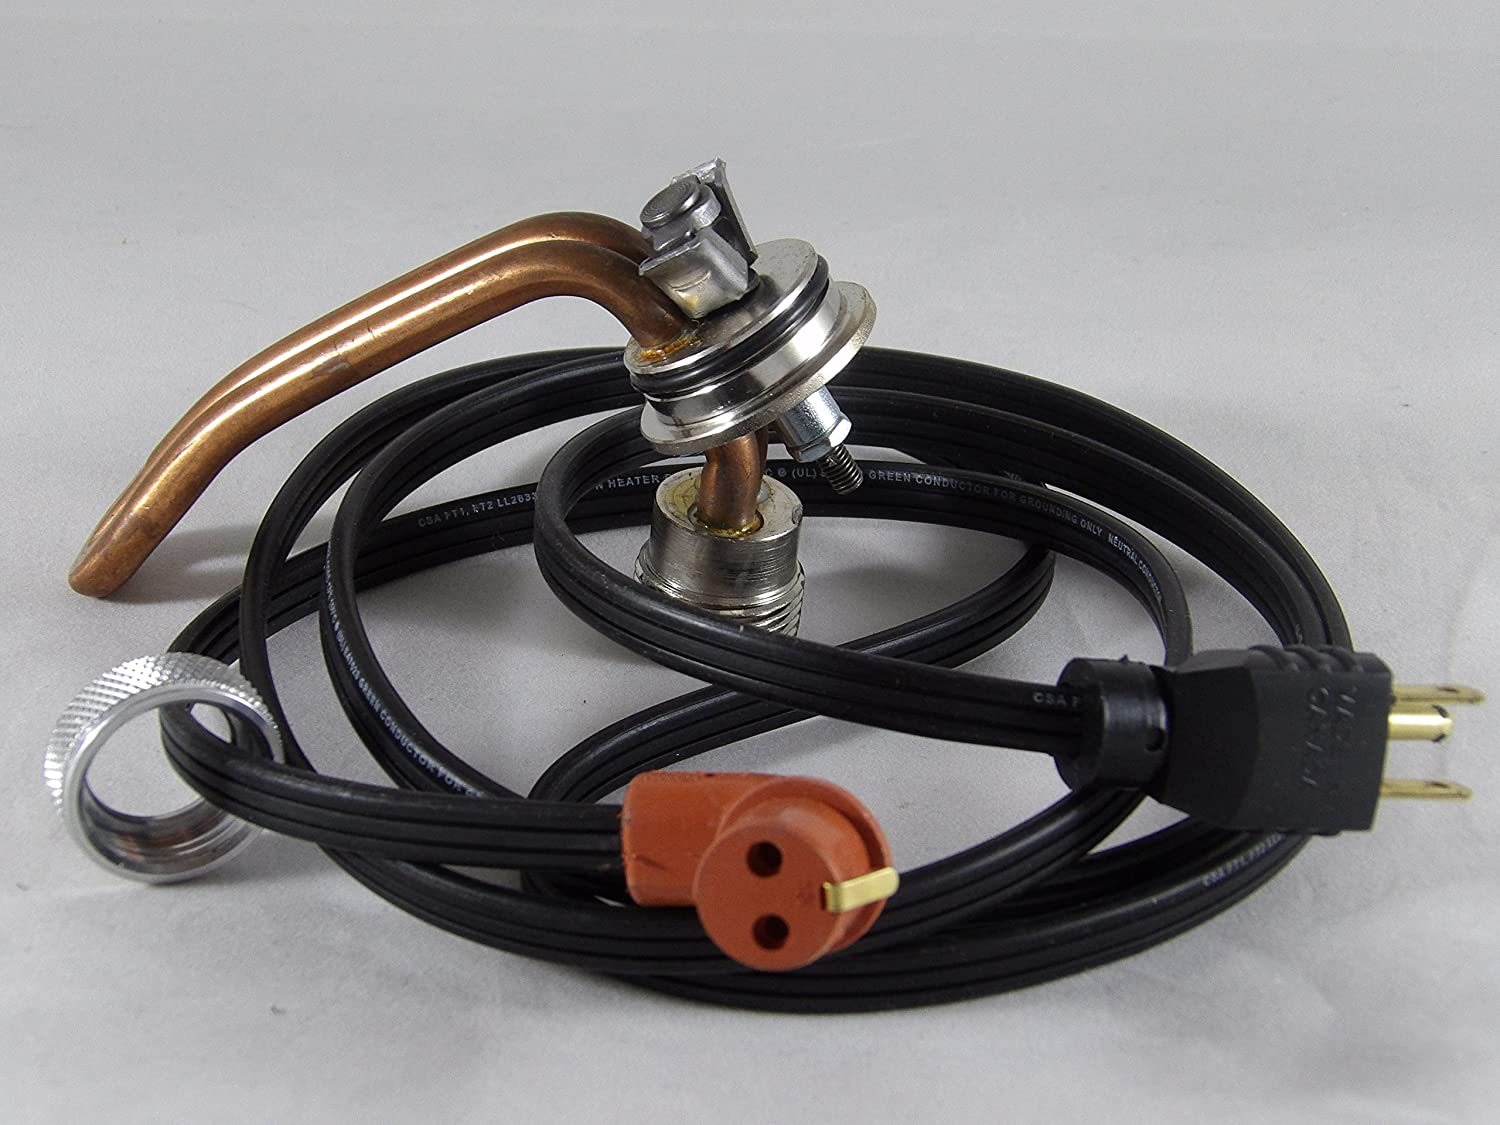 Engine Heater Kit compatible with INTERNATIONAL//NAVISTAR D312 DT414 D414 Engines manufactured prior to 1994